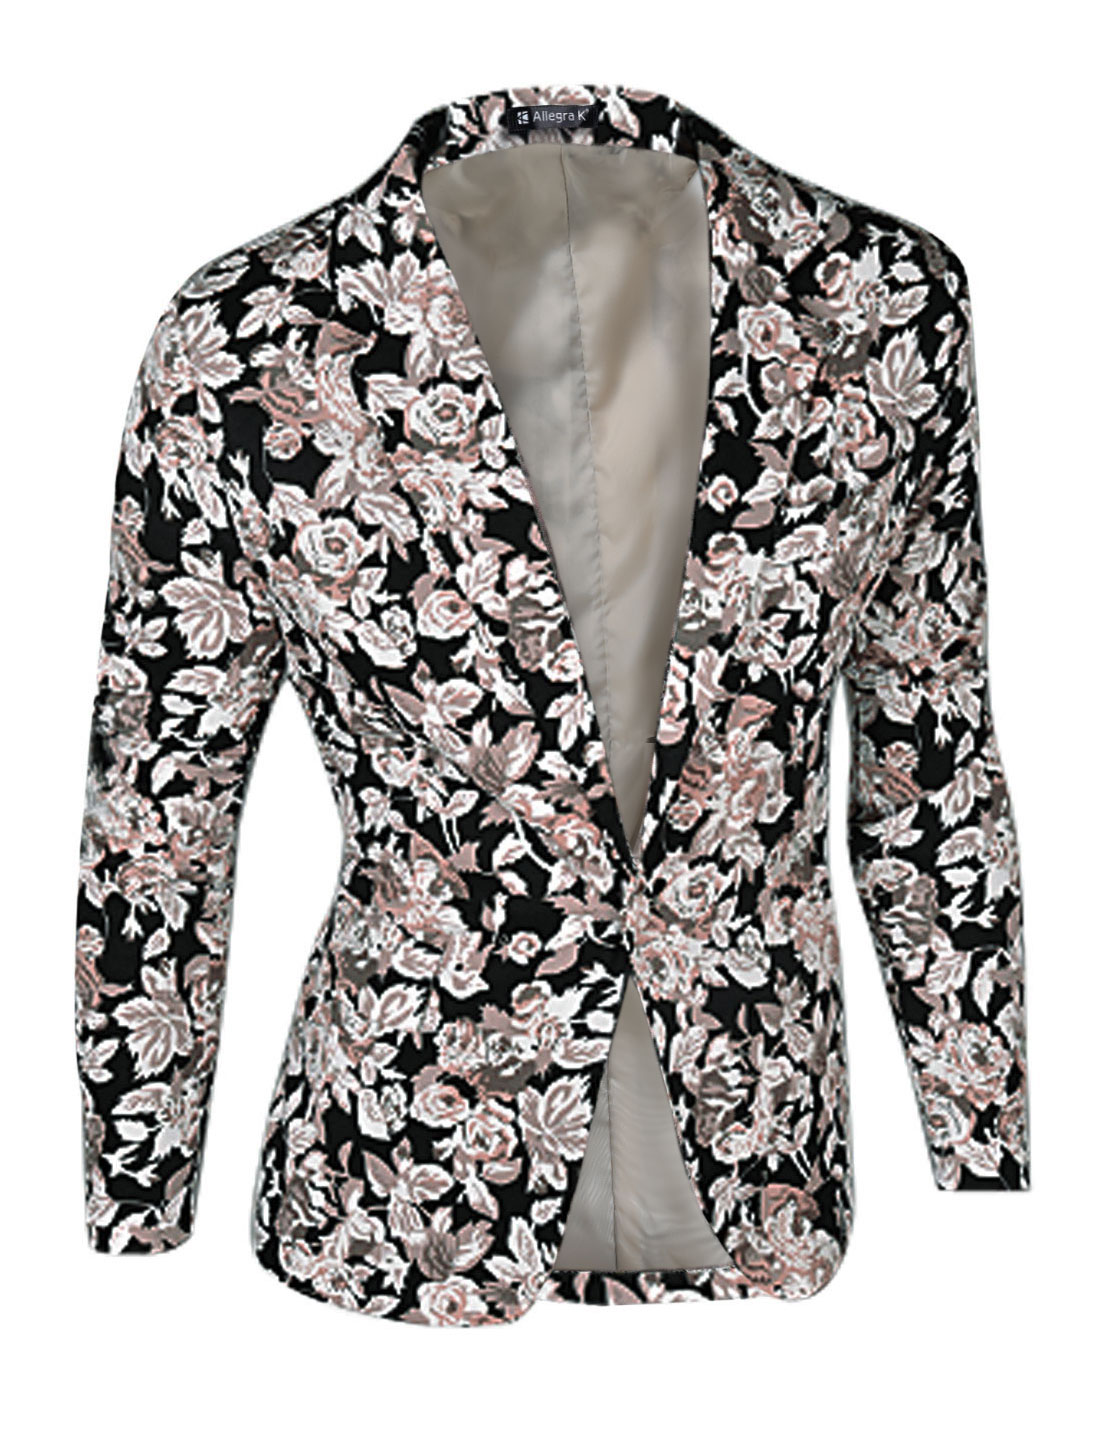 Men Floral Prints Padded Shoulder One-Button Casual Blazer Jacket Black S